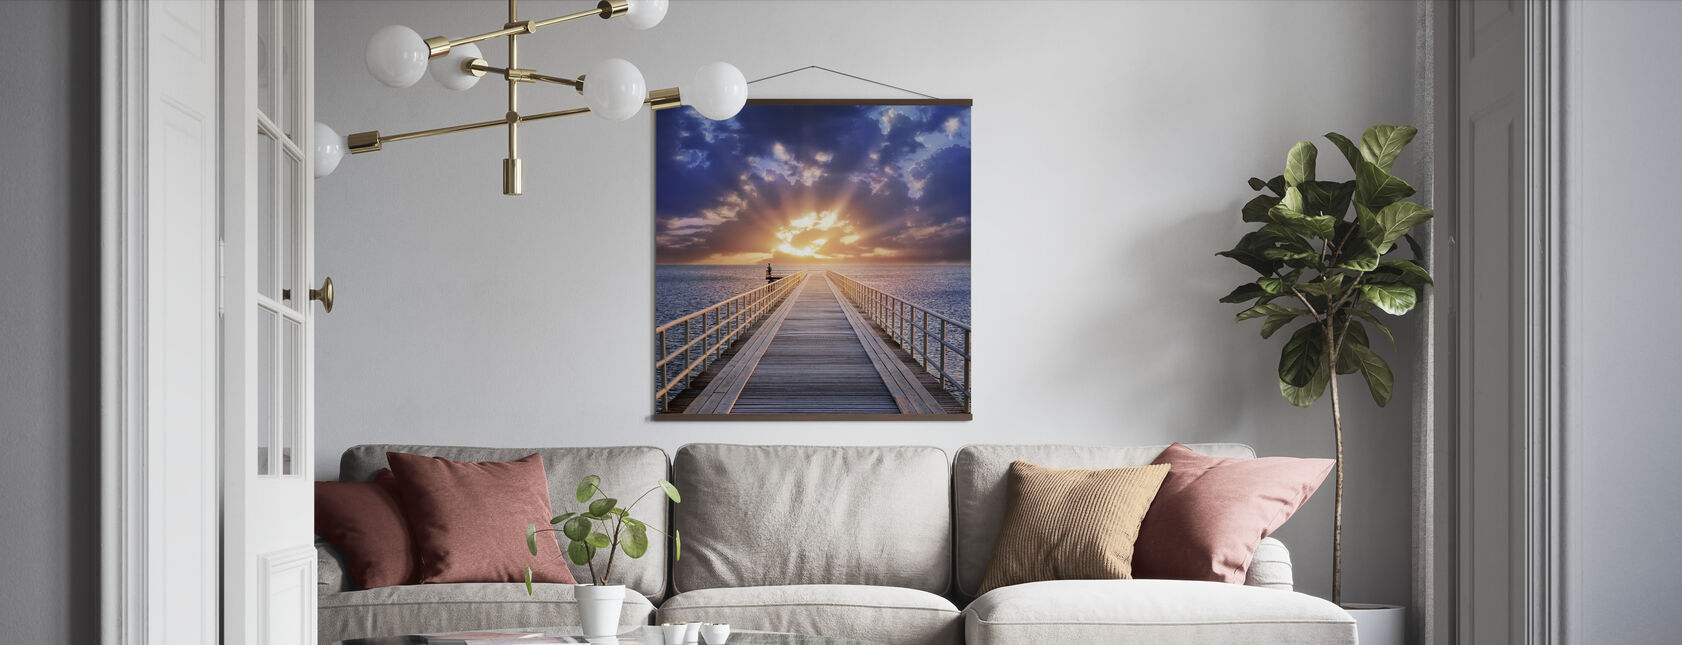 Backlight Bridge - Poster - Living Room